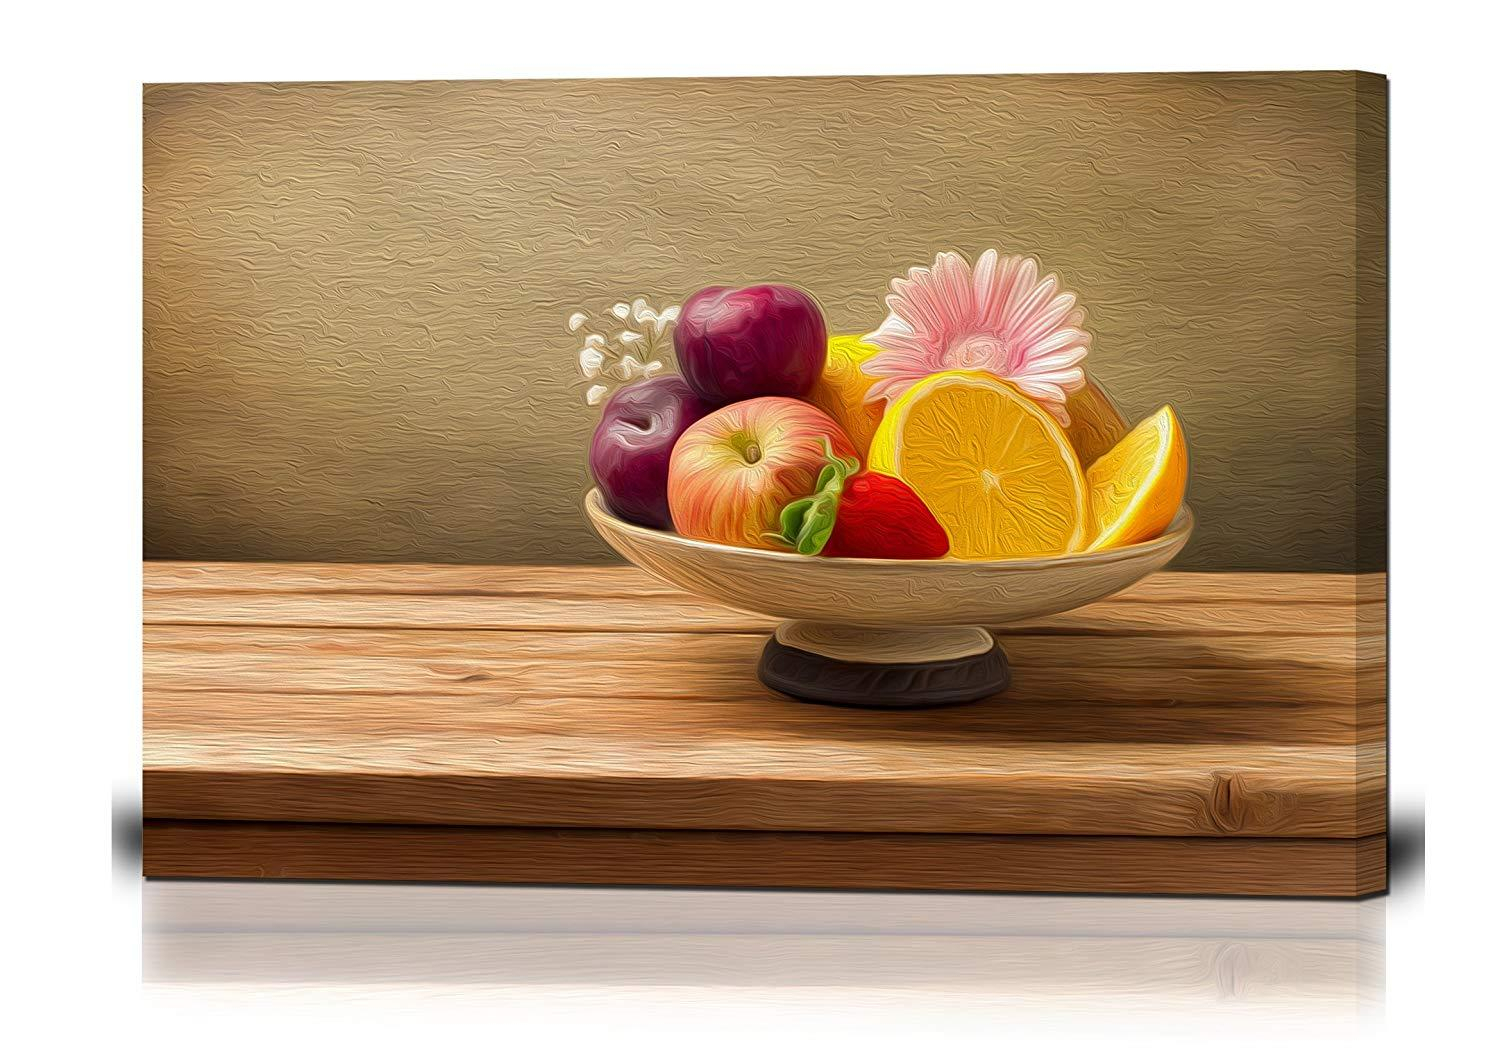 Canvas Wall Art - Vase With Fresh Fruits And Flowers On Wooden Table - Oil  Painting Style Giclee Print Gallery Wrap Modern Home Decor Ready To Hang with regard to Vase and Bowl Wall Decor (Image 9 of 30)